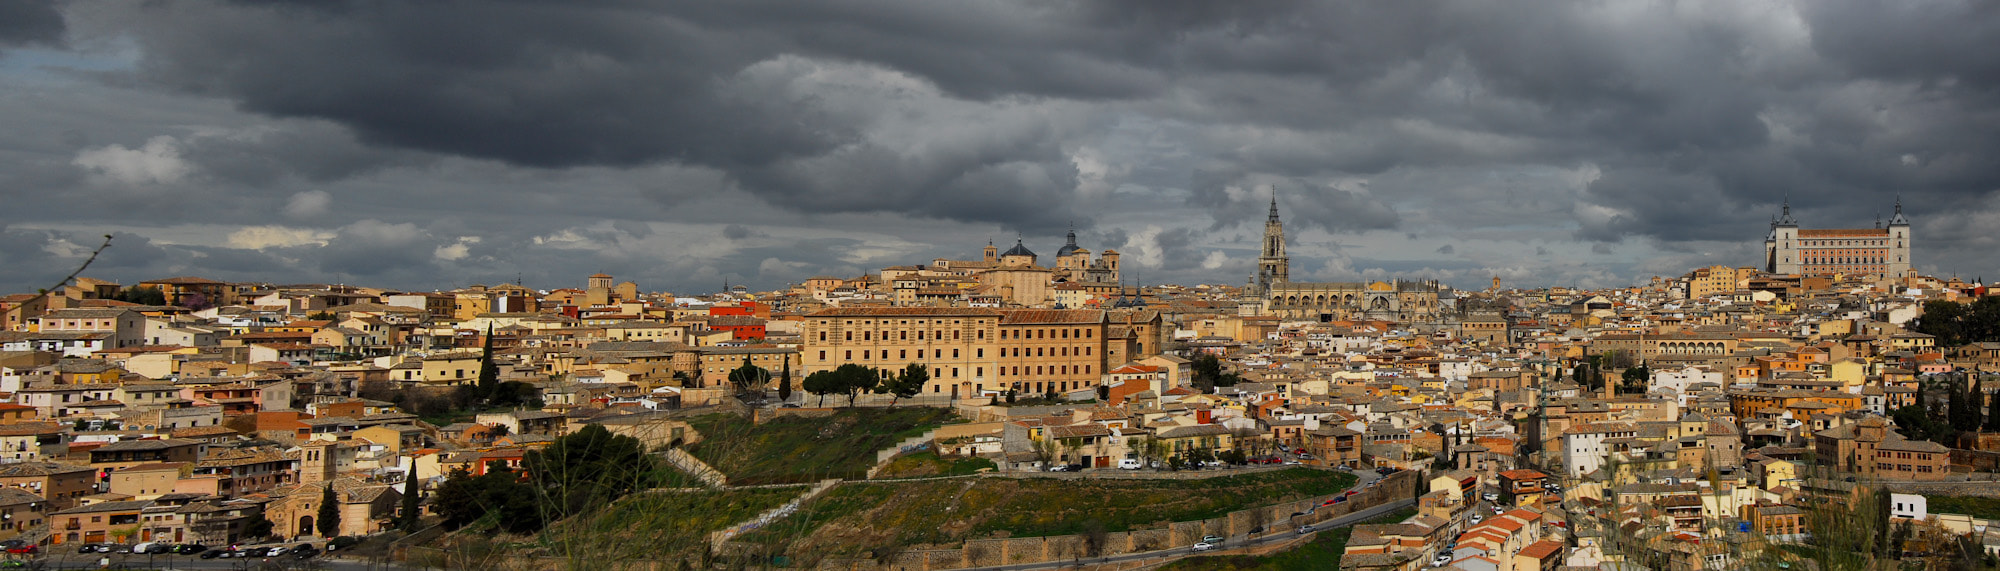 Photograph Magic hour in Toledo, Pano by Dario Ricardo on 500px